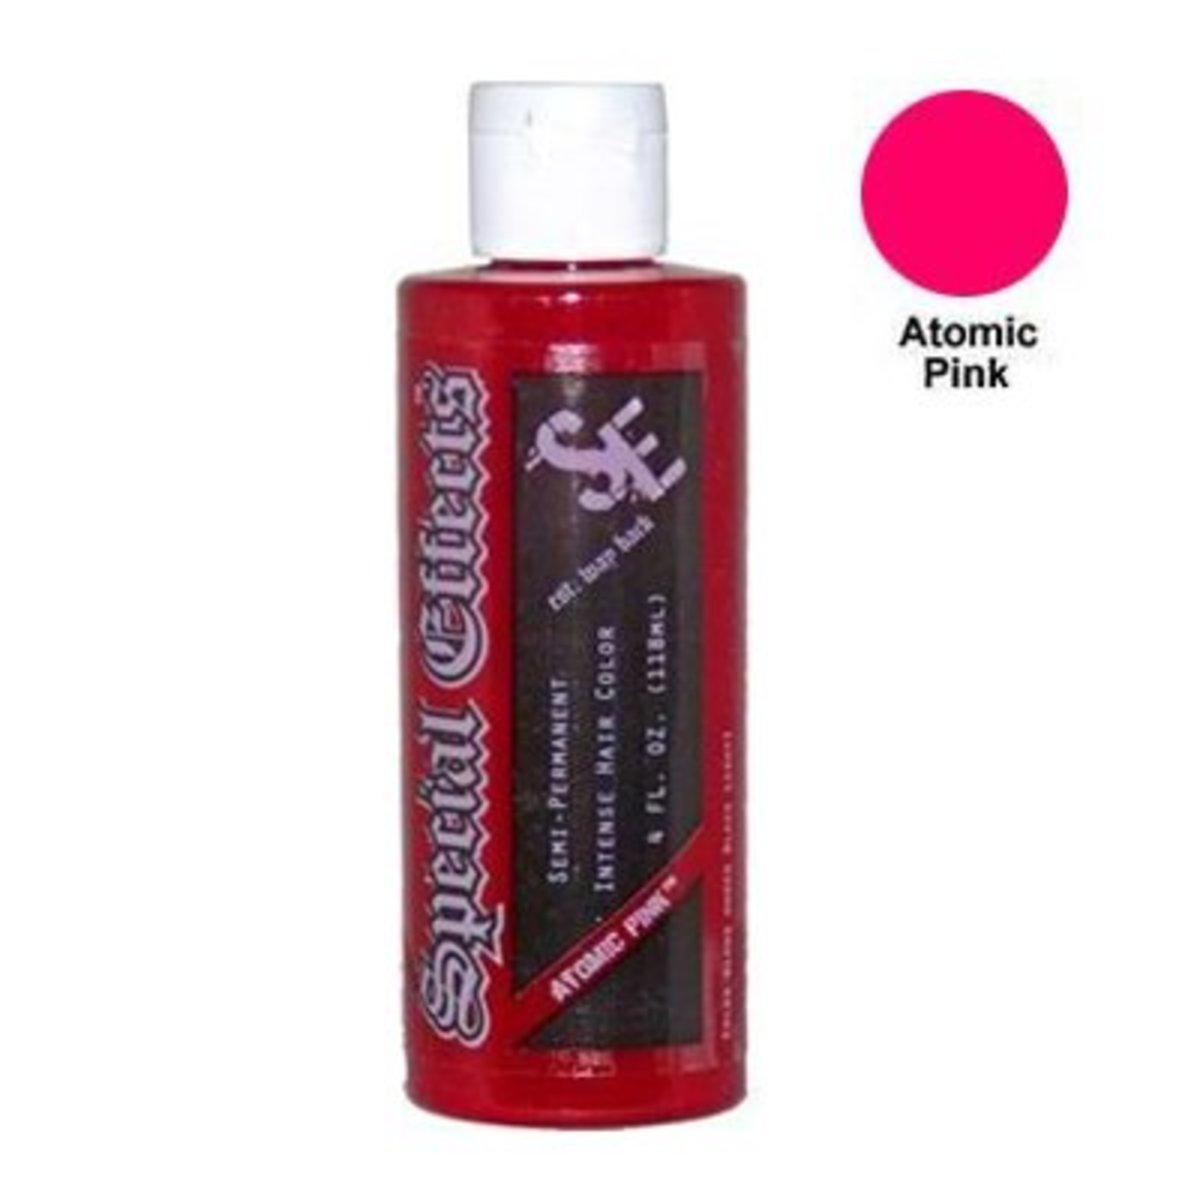 Recommended: Special Effects Atomic Pink. Dilute with white conditioner to make your perfect pastel!